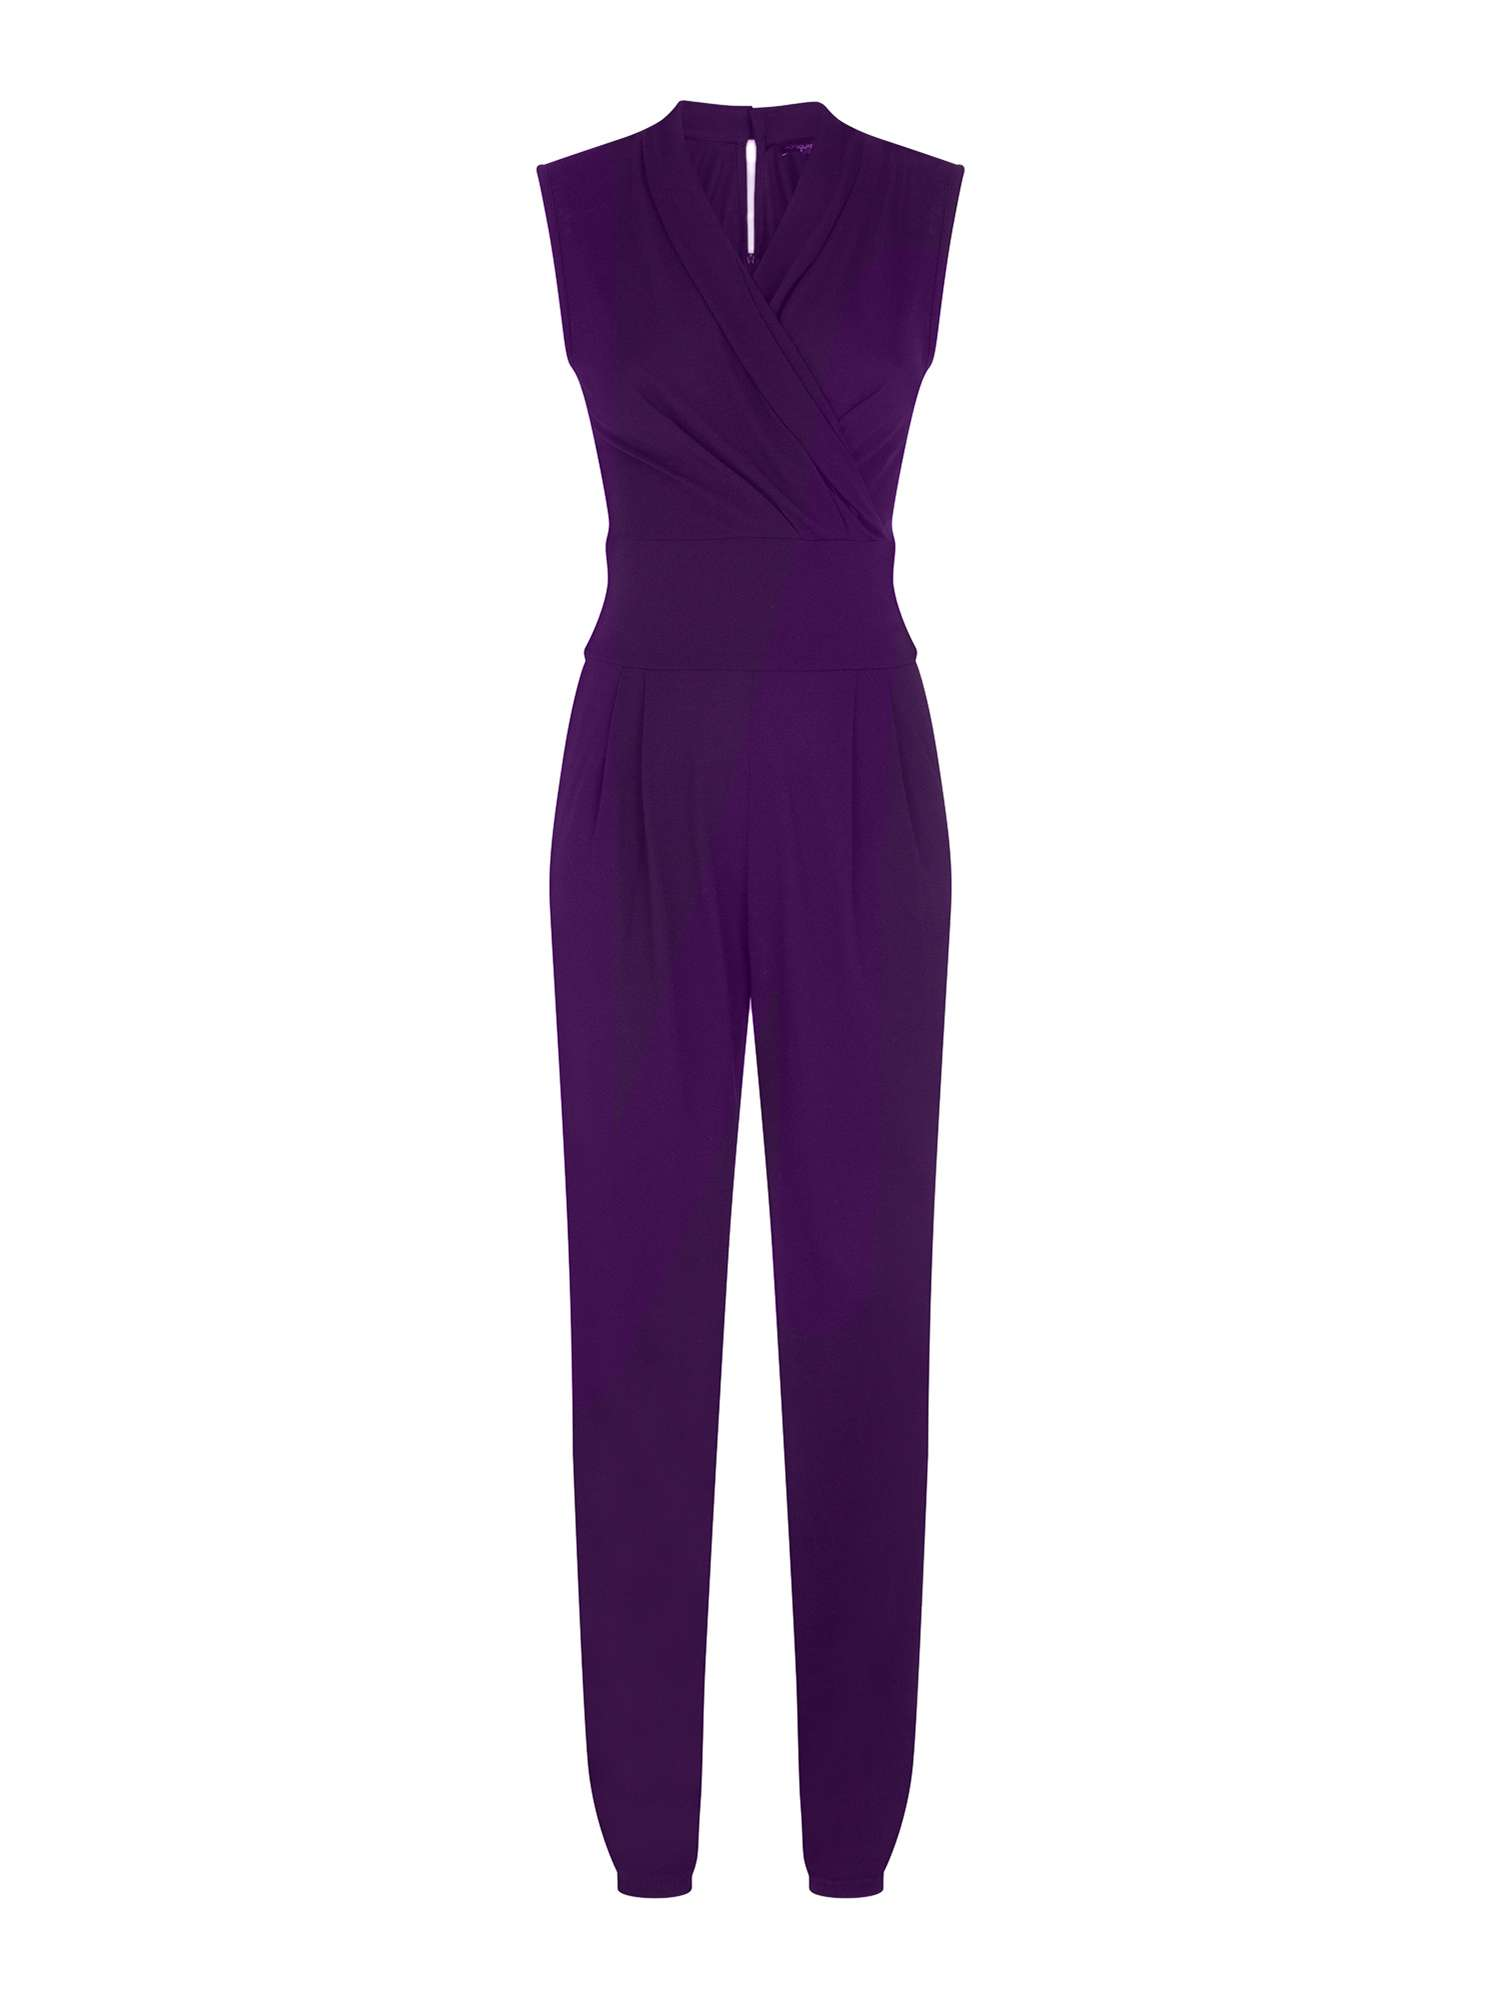 Clevertech Jumpsuit With Jumpsuit With HotSquash HotSquash Clevertech HotSquash q0SywH